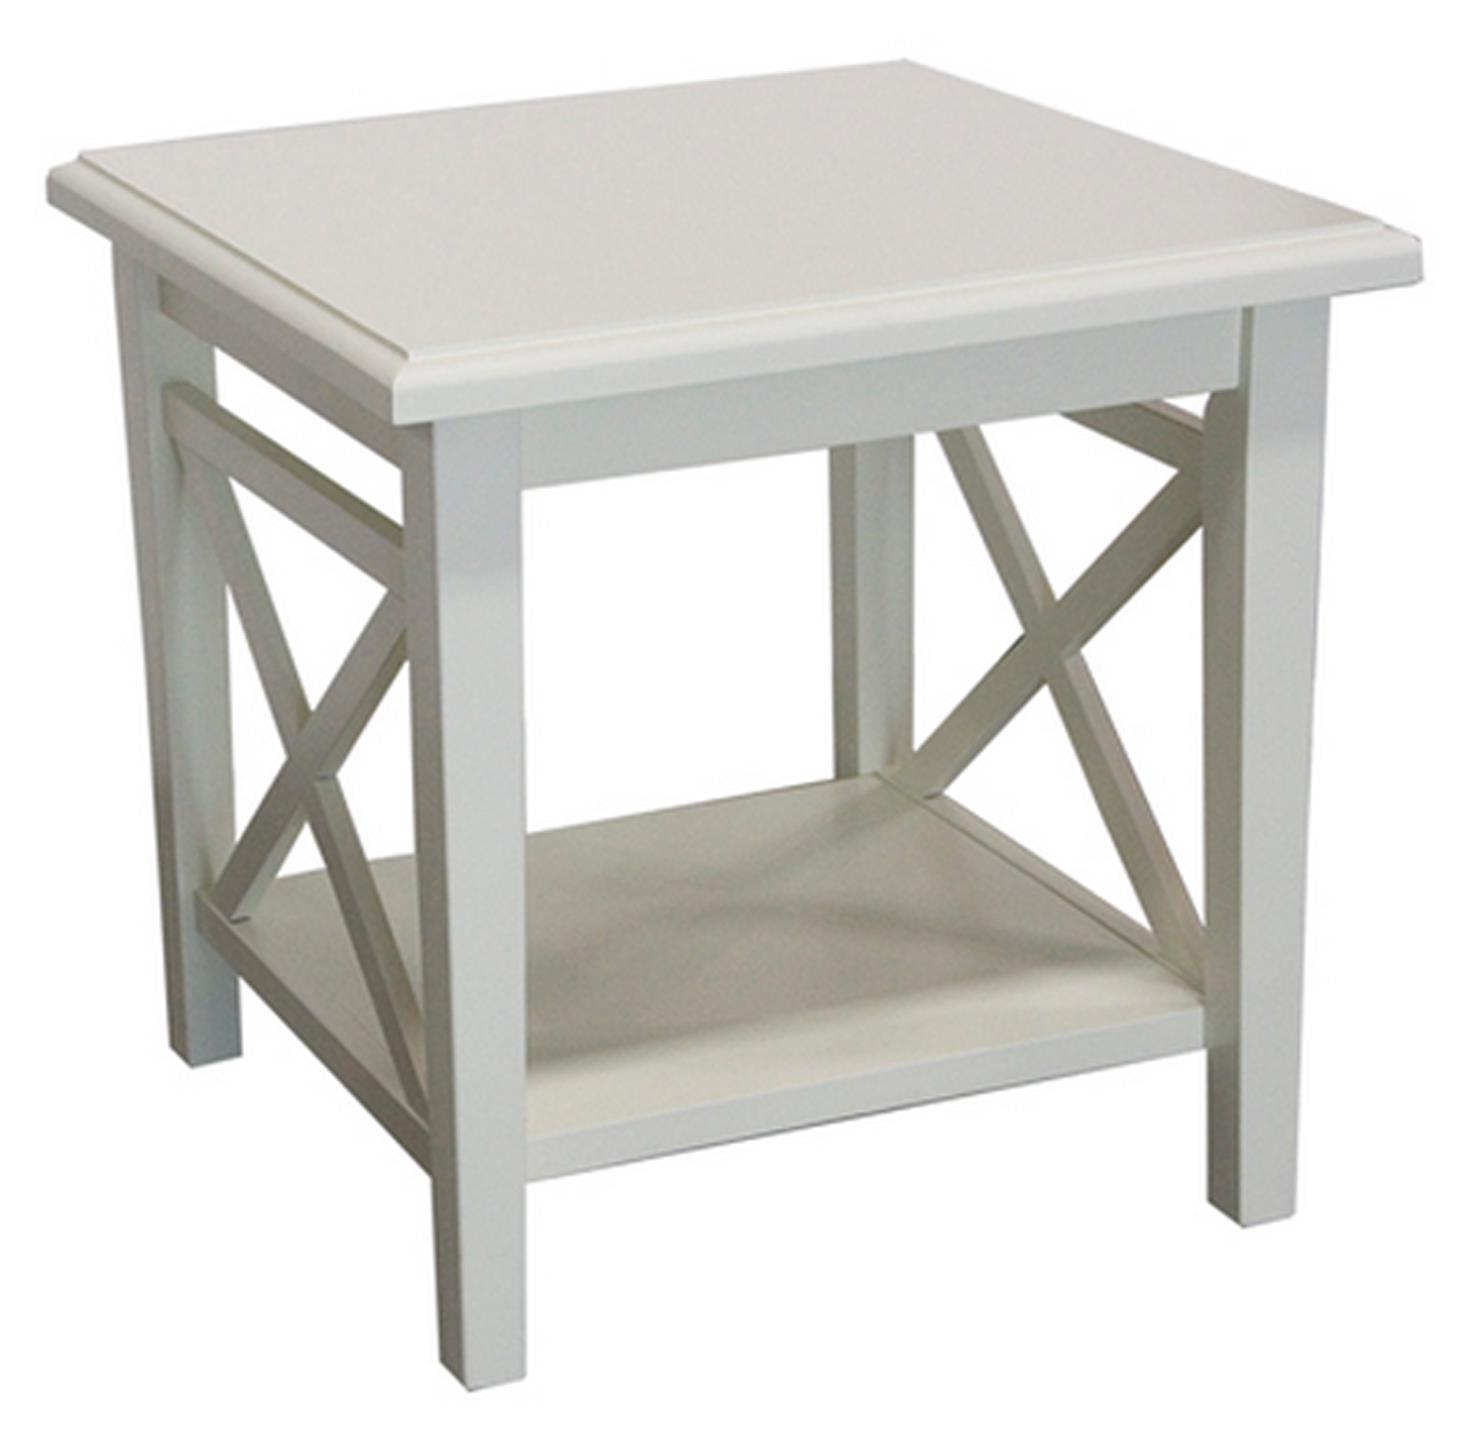 747 Lamp Table by Capris Furniture at Esprit Decor Home Furnishings